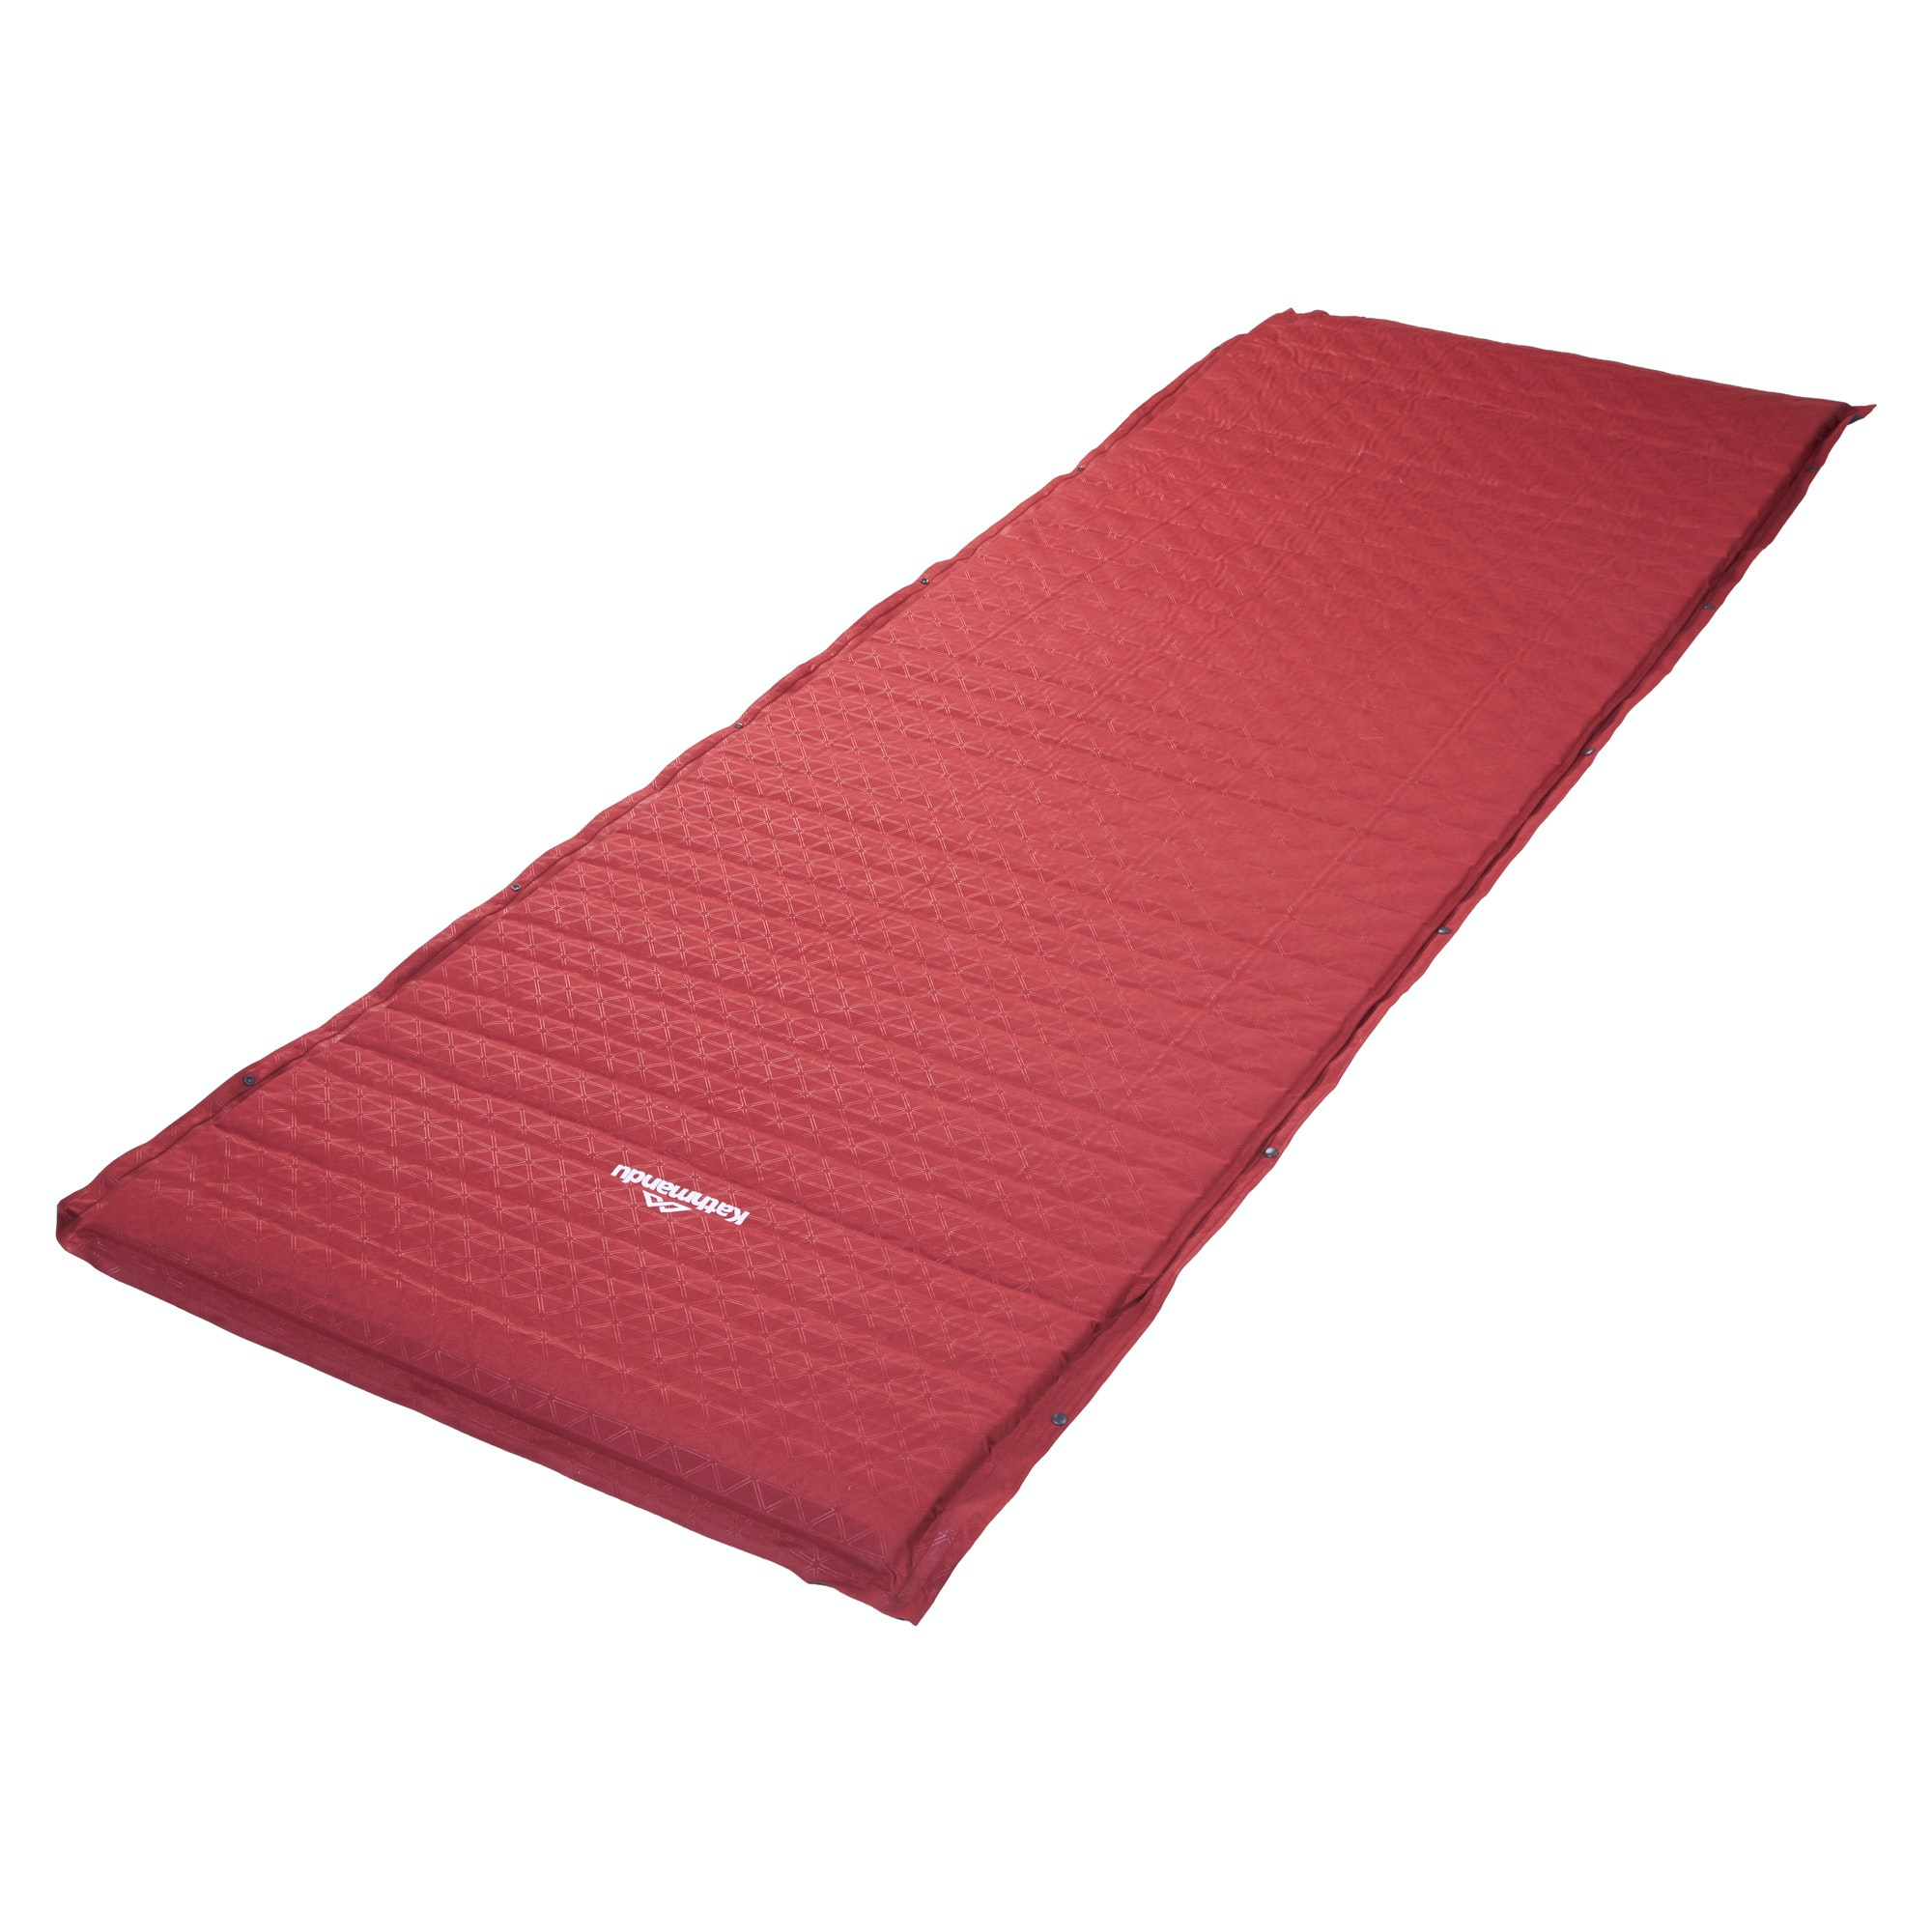 equipment insulated com camping uul up mat sports outdoors amazon general foam dp sleeping sporting roll